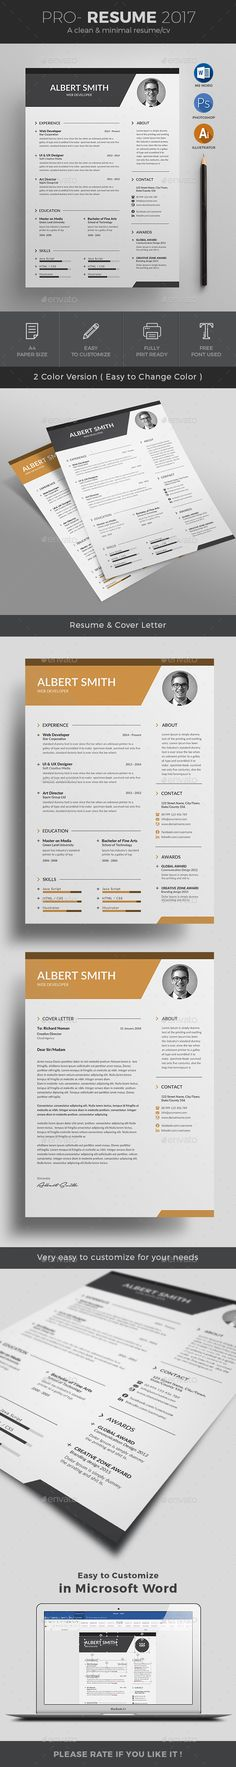 Resume Simple, Cleanses and Print - colorful resume template free download